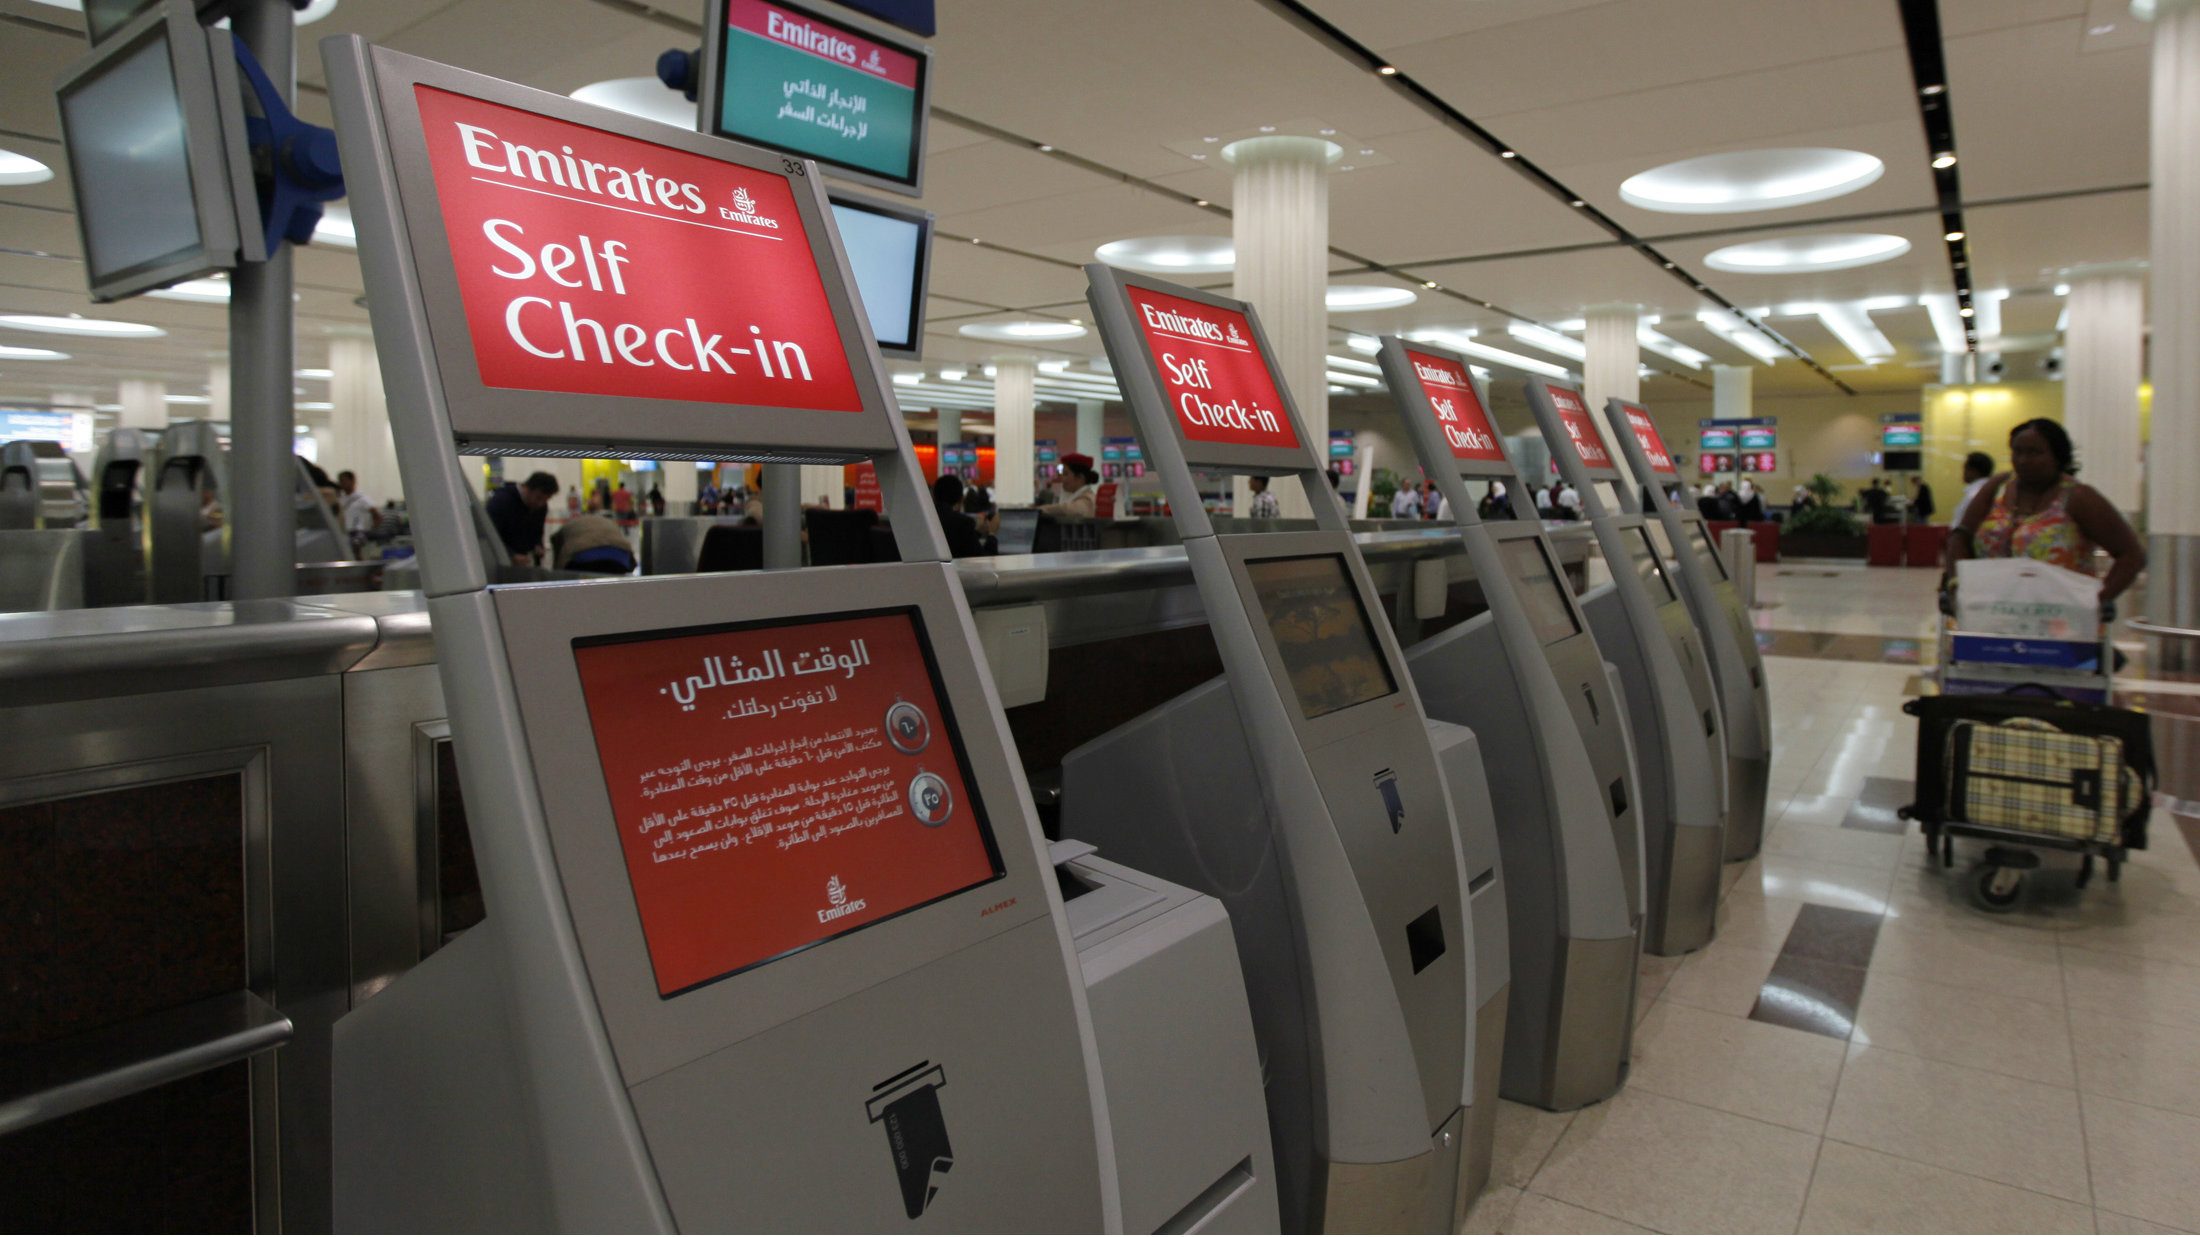 Self check-in kiosks are seen at the Emirates Airlines departures terminal at Dubai International Airport, February 6, 2012.